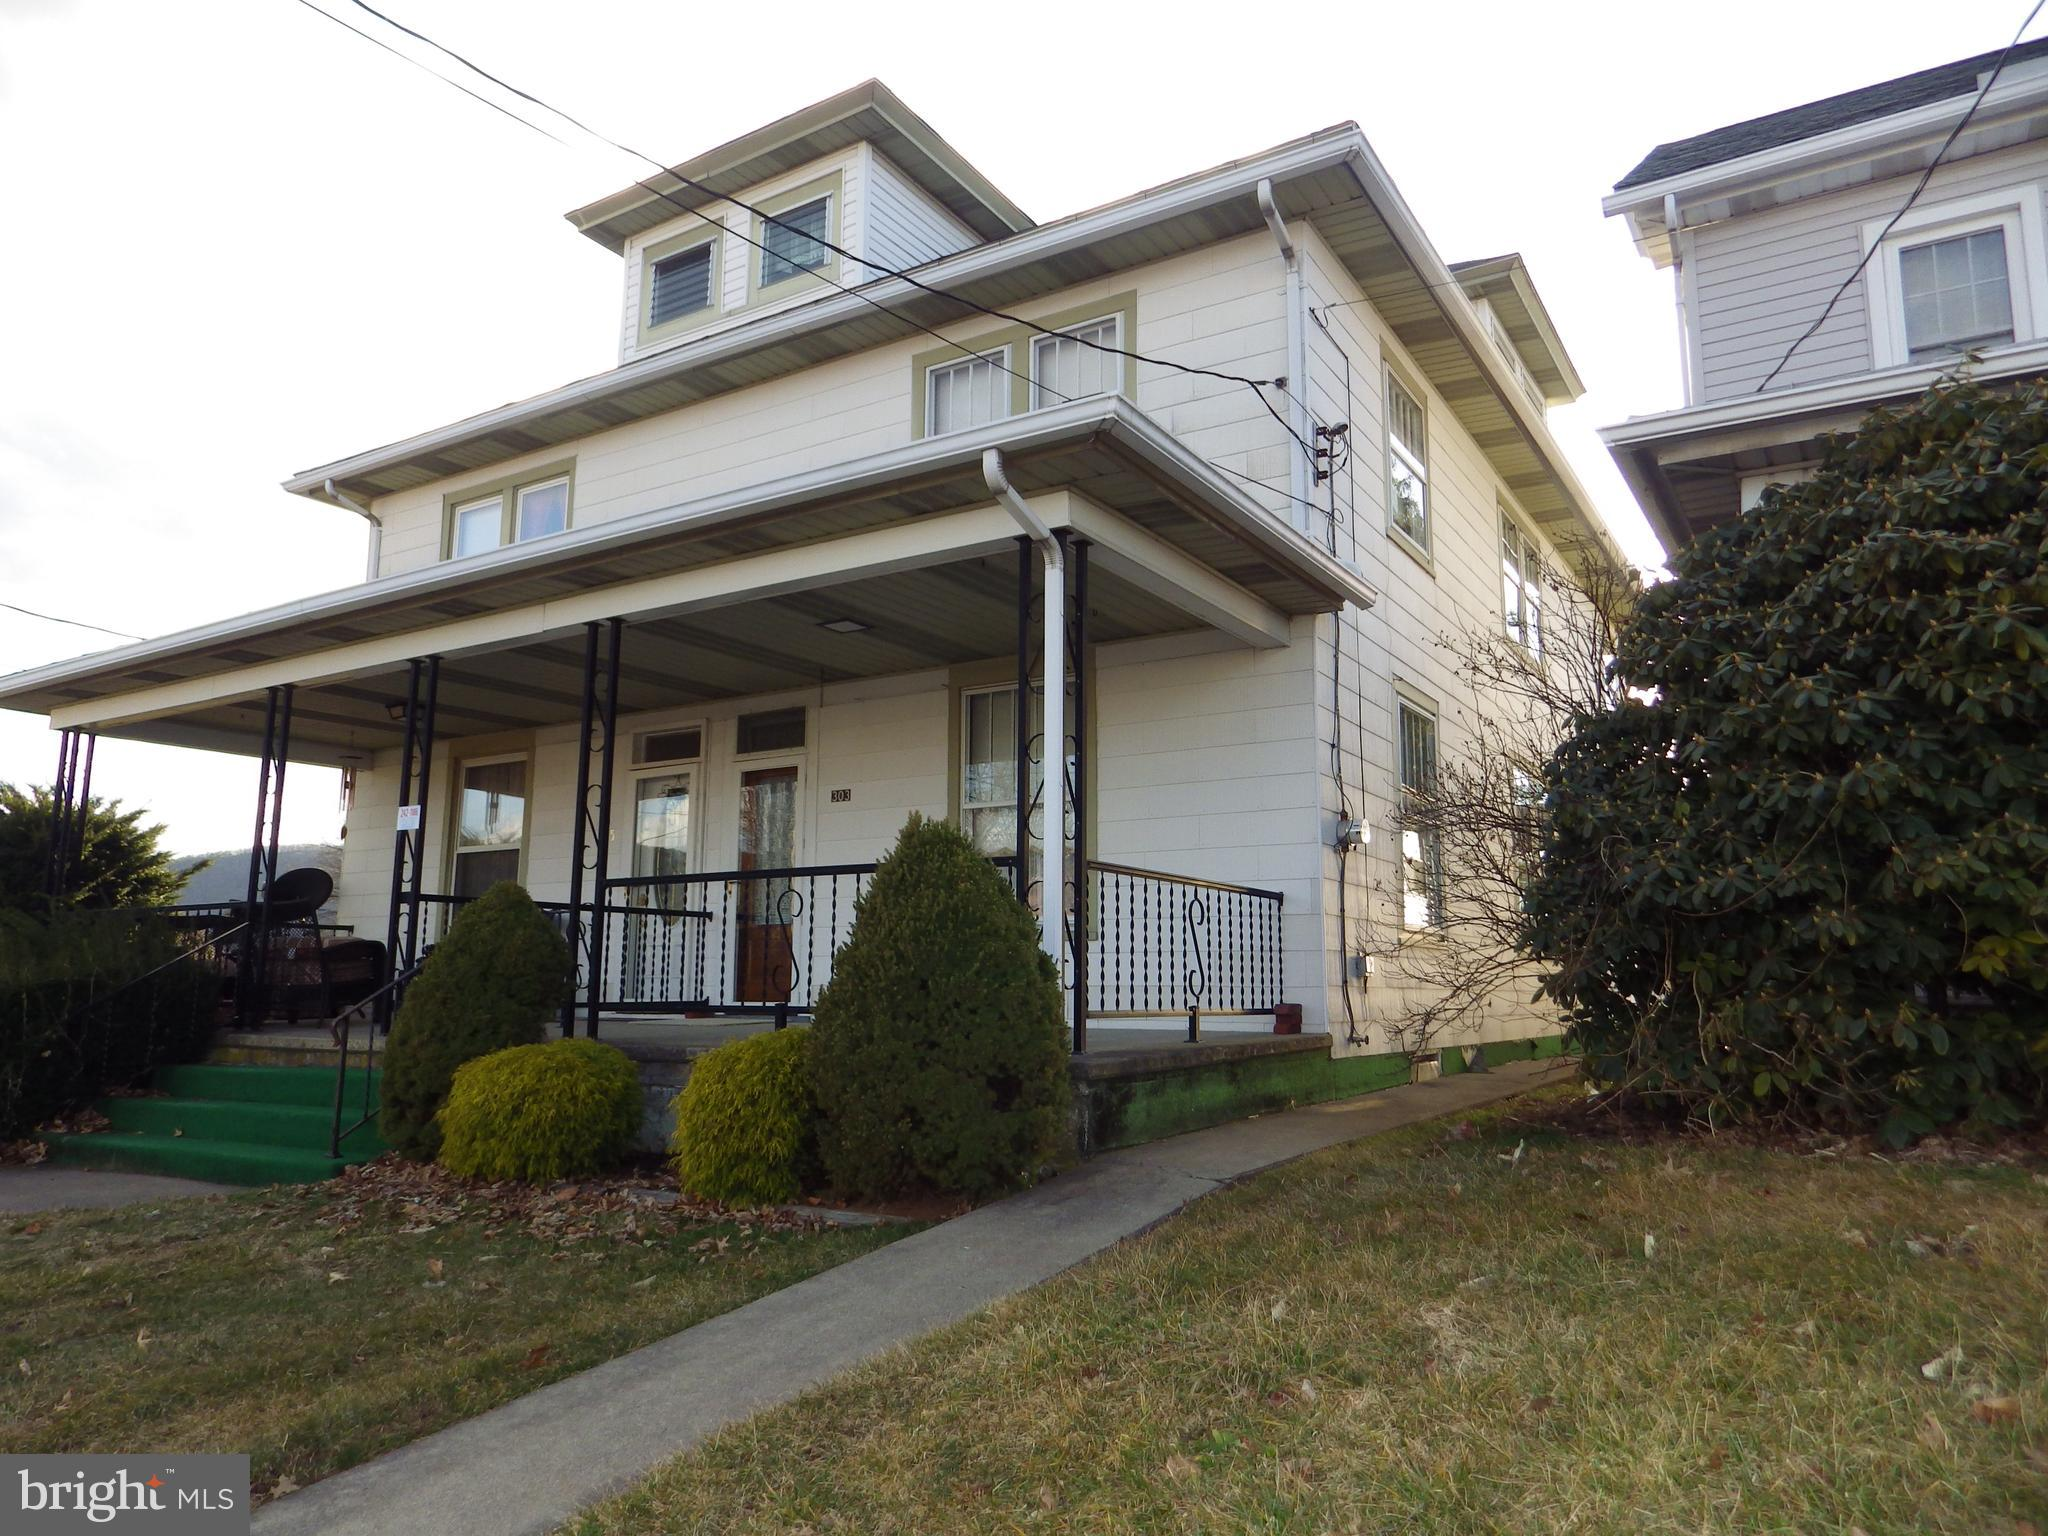 303 GAP STREET, VALLEY VIEW, PA 17983